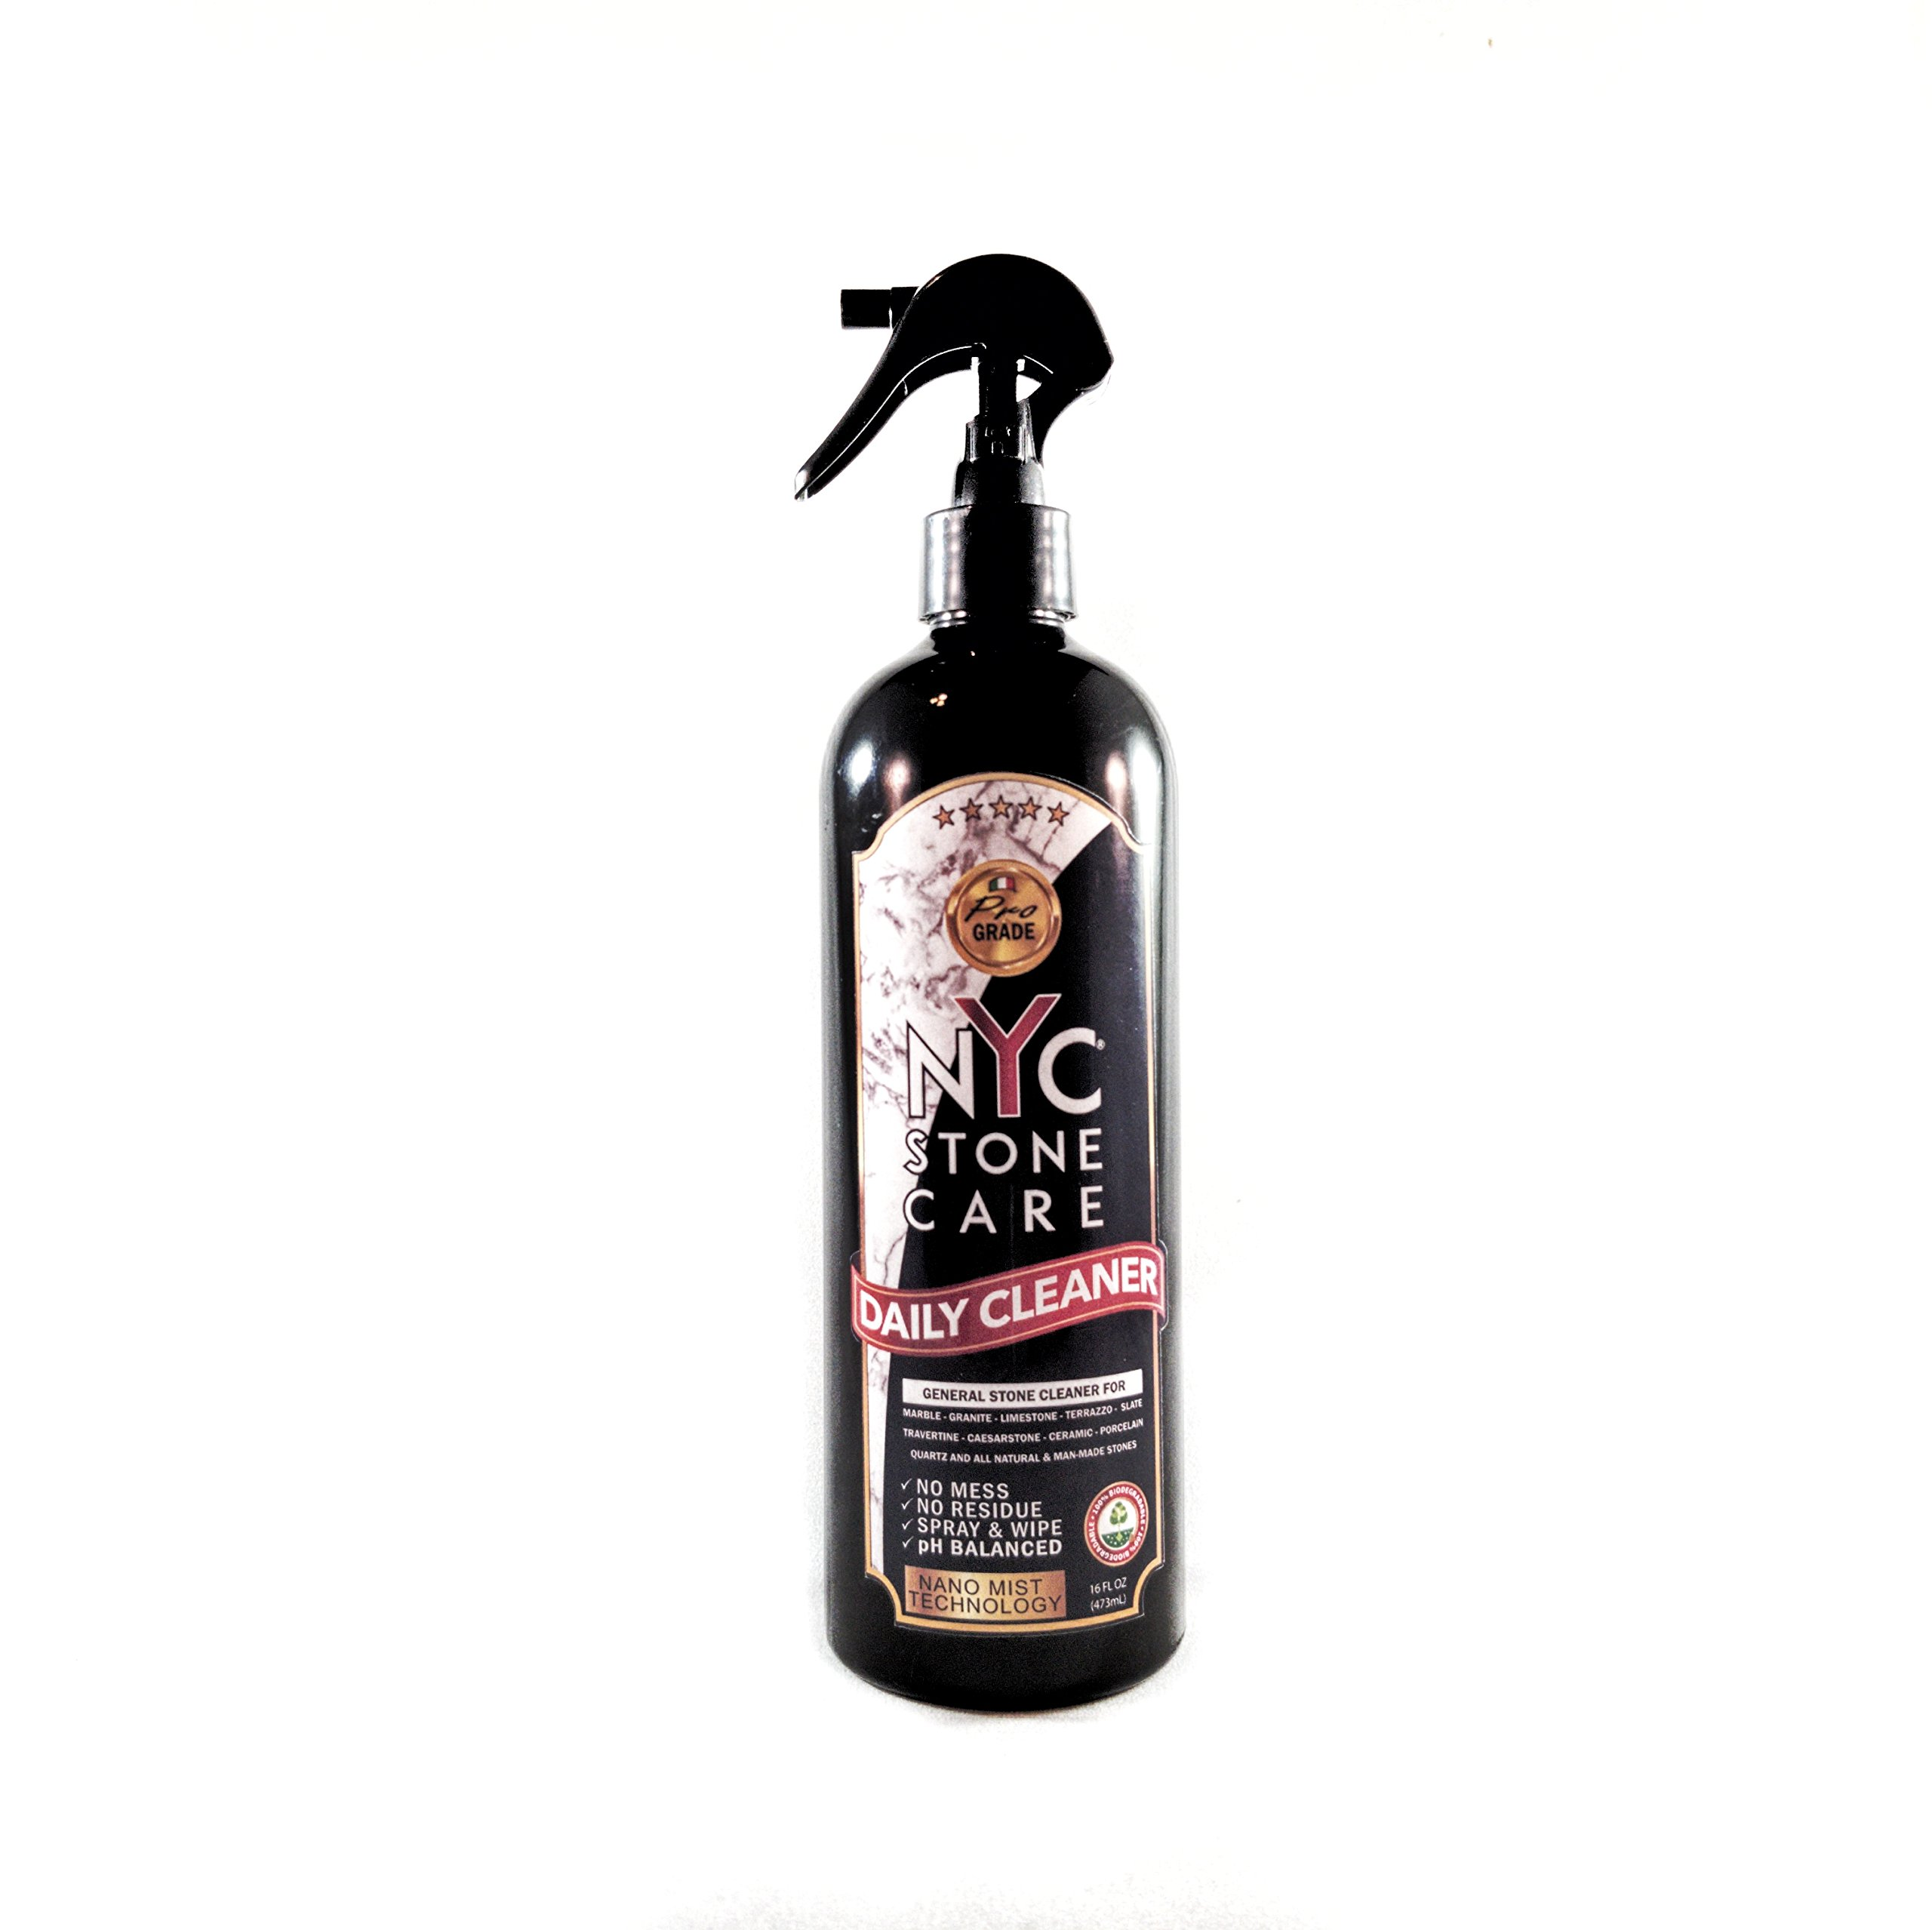 NYC Stone Care - Daily Stone Cleaner - 16Fl.oz pH Neutral Daily Cleaner for Marble, Granite and All Types of Natural and Man-Made Stones